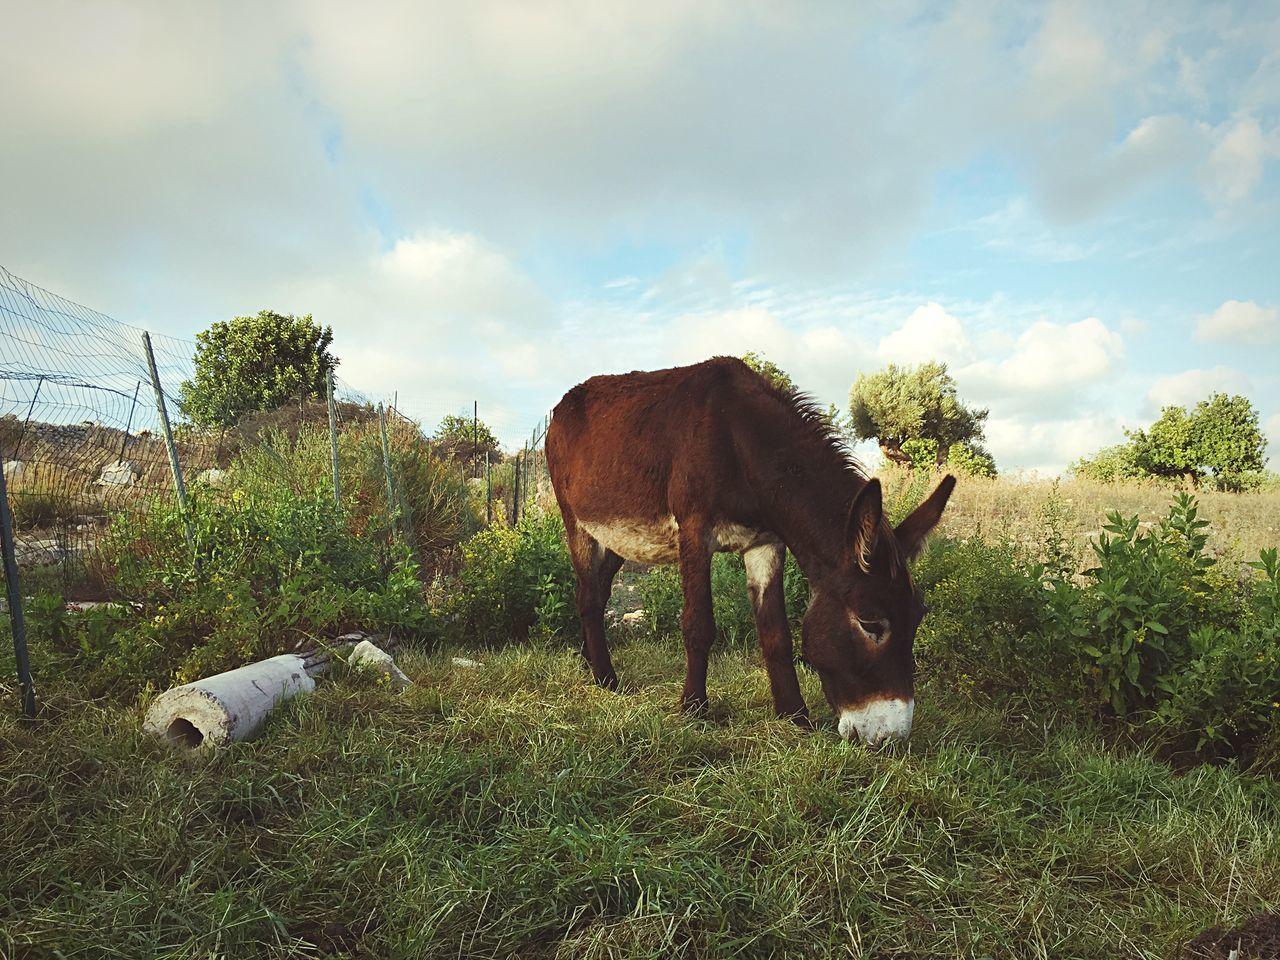 Beautiful stock photos of donkey, Animal Themes, Cloud - Sky, Day, Domestic Animals